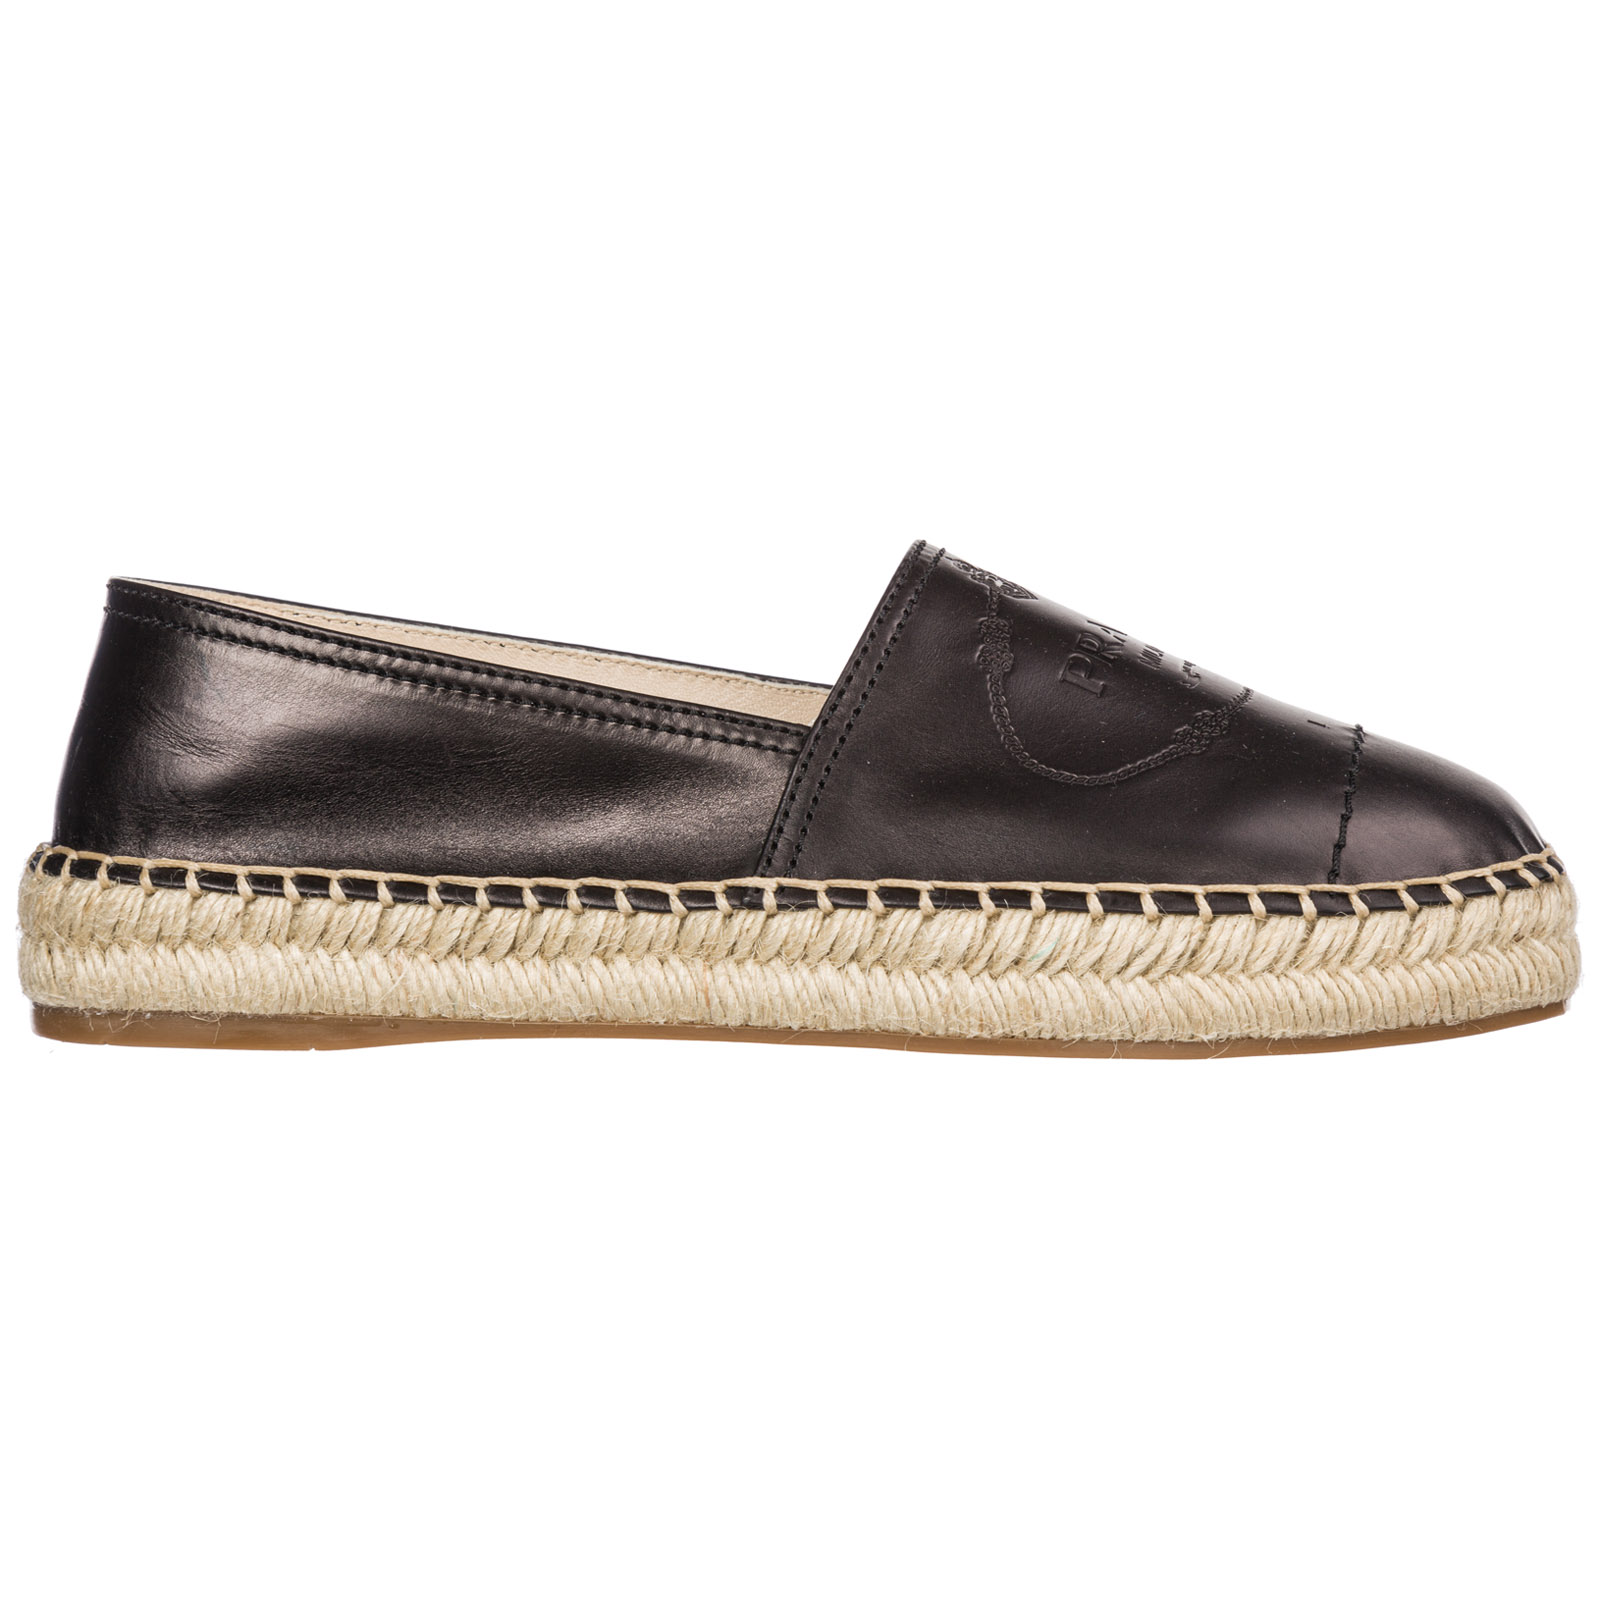 low cost hot products lowest price Women's espadrilles slip on shoes